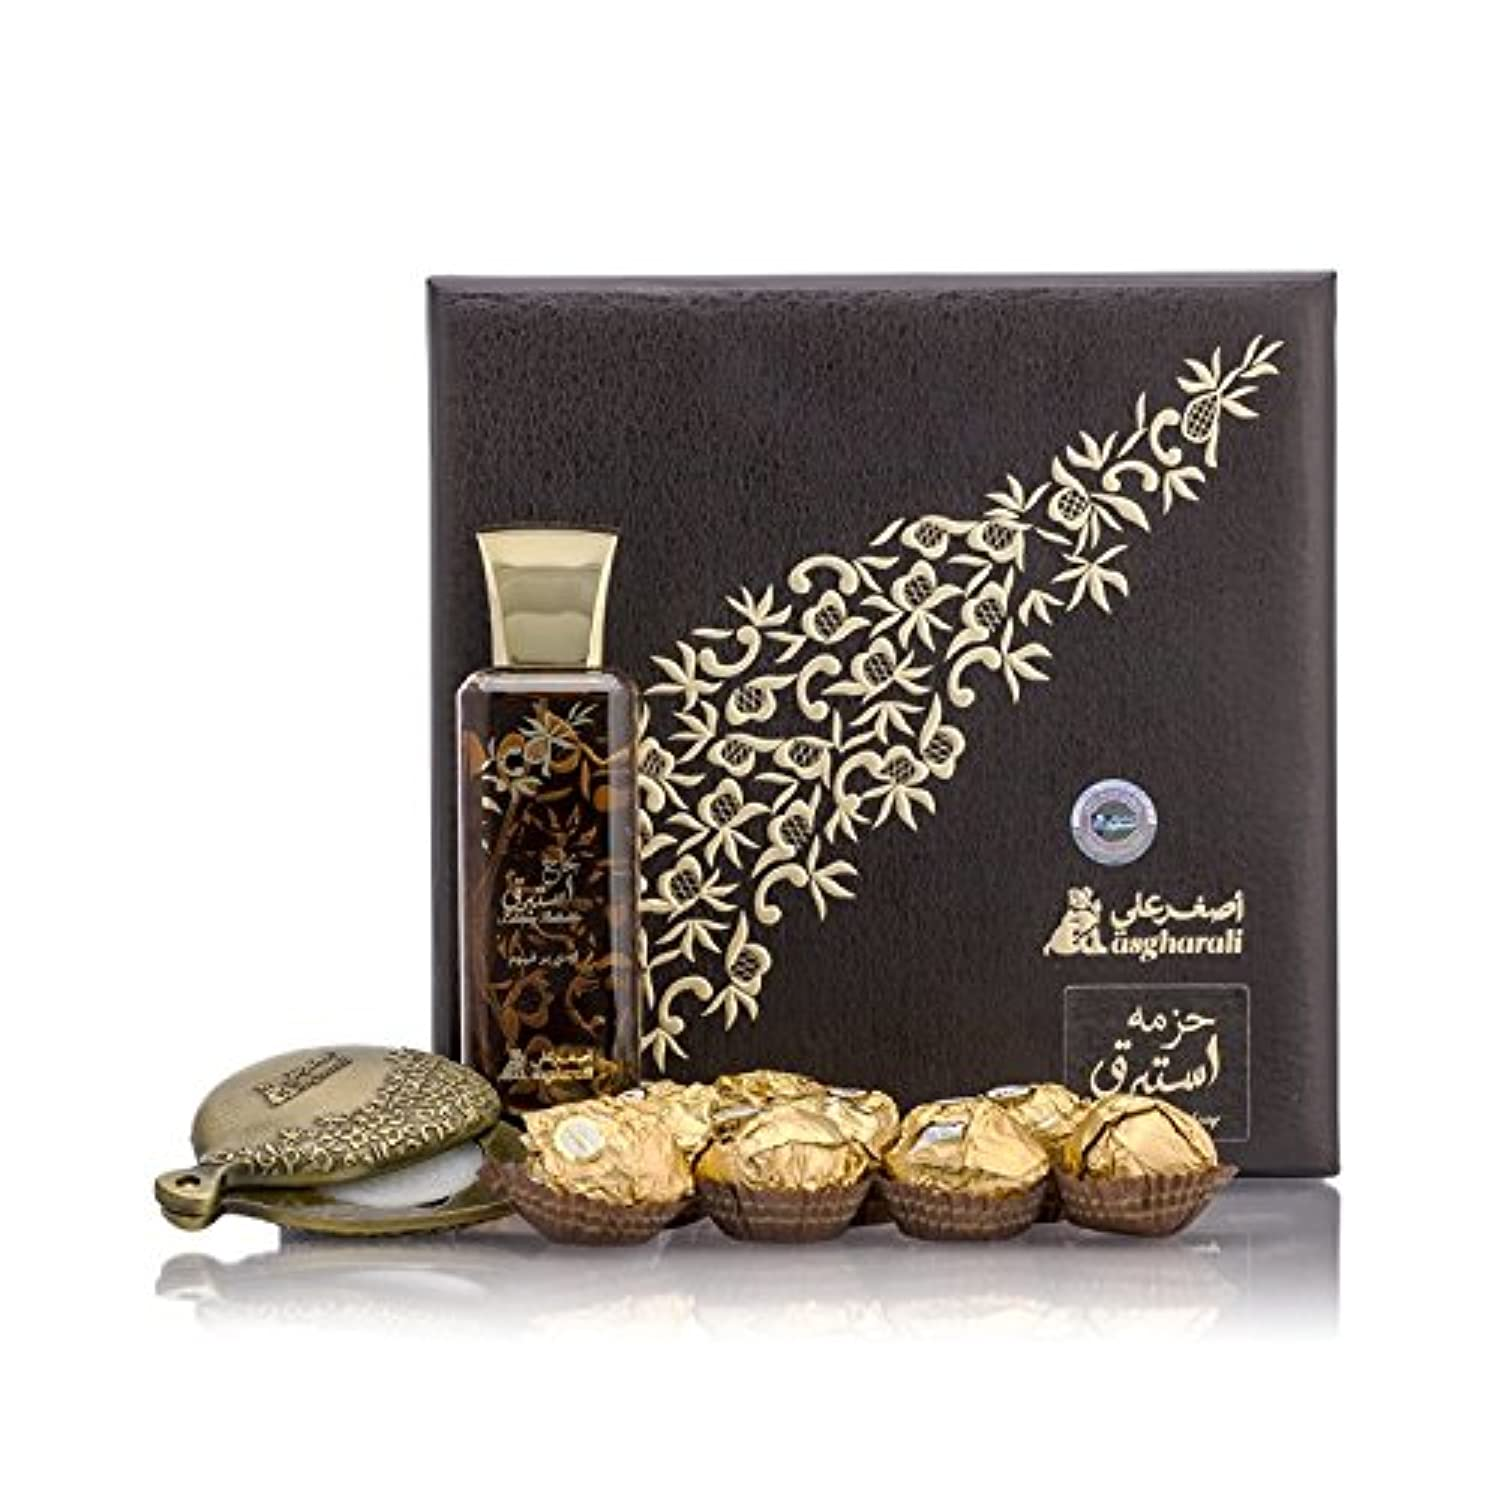 会員で有名人estabraq Hazma – Incense Bakhoorギフトセットby Asgharali Perfumes